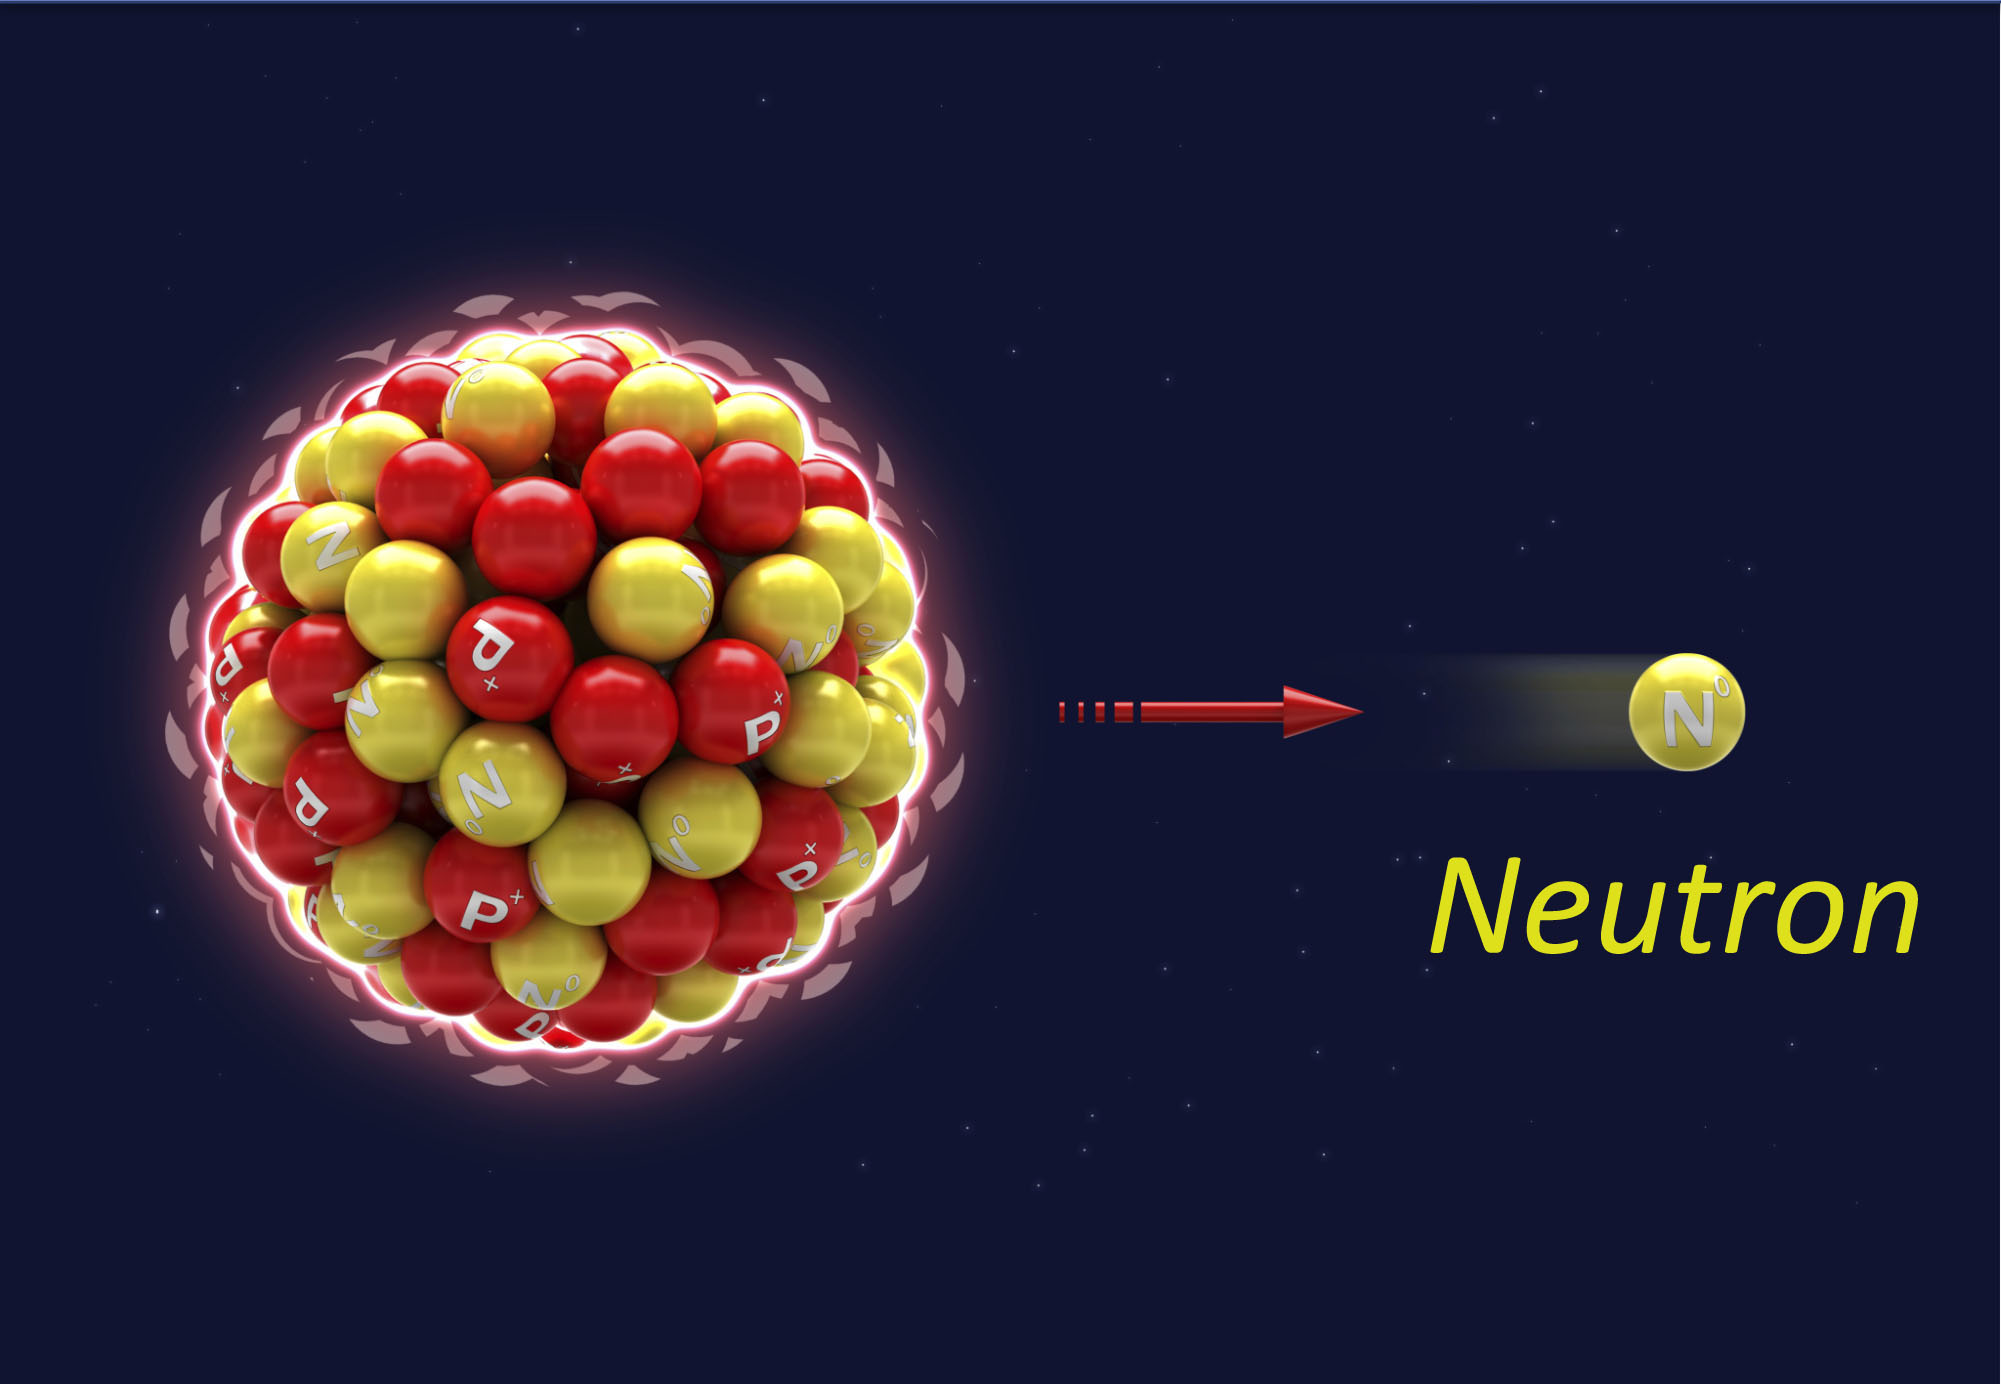 Illustration of neutron being ejected from nucleus of atom